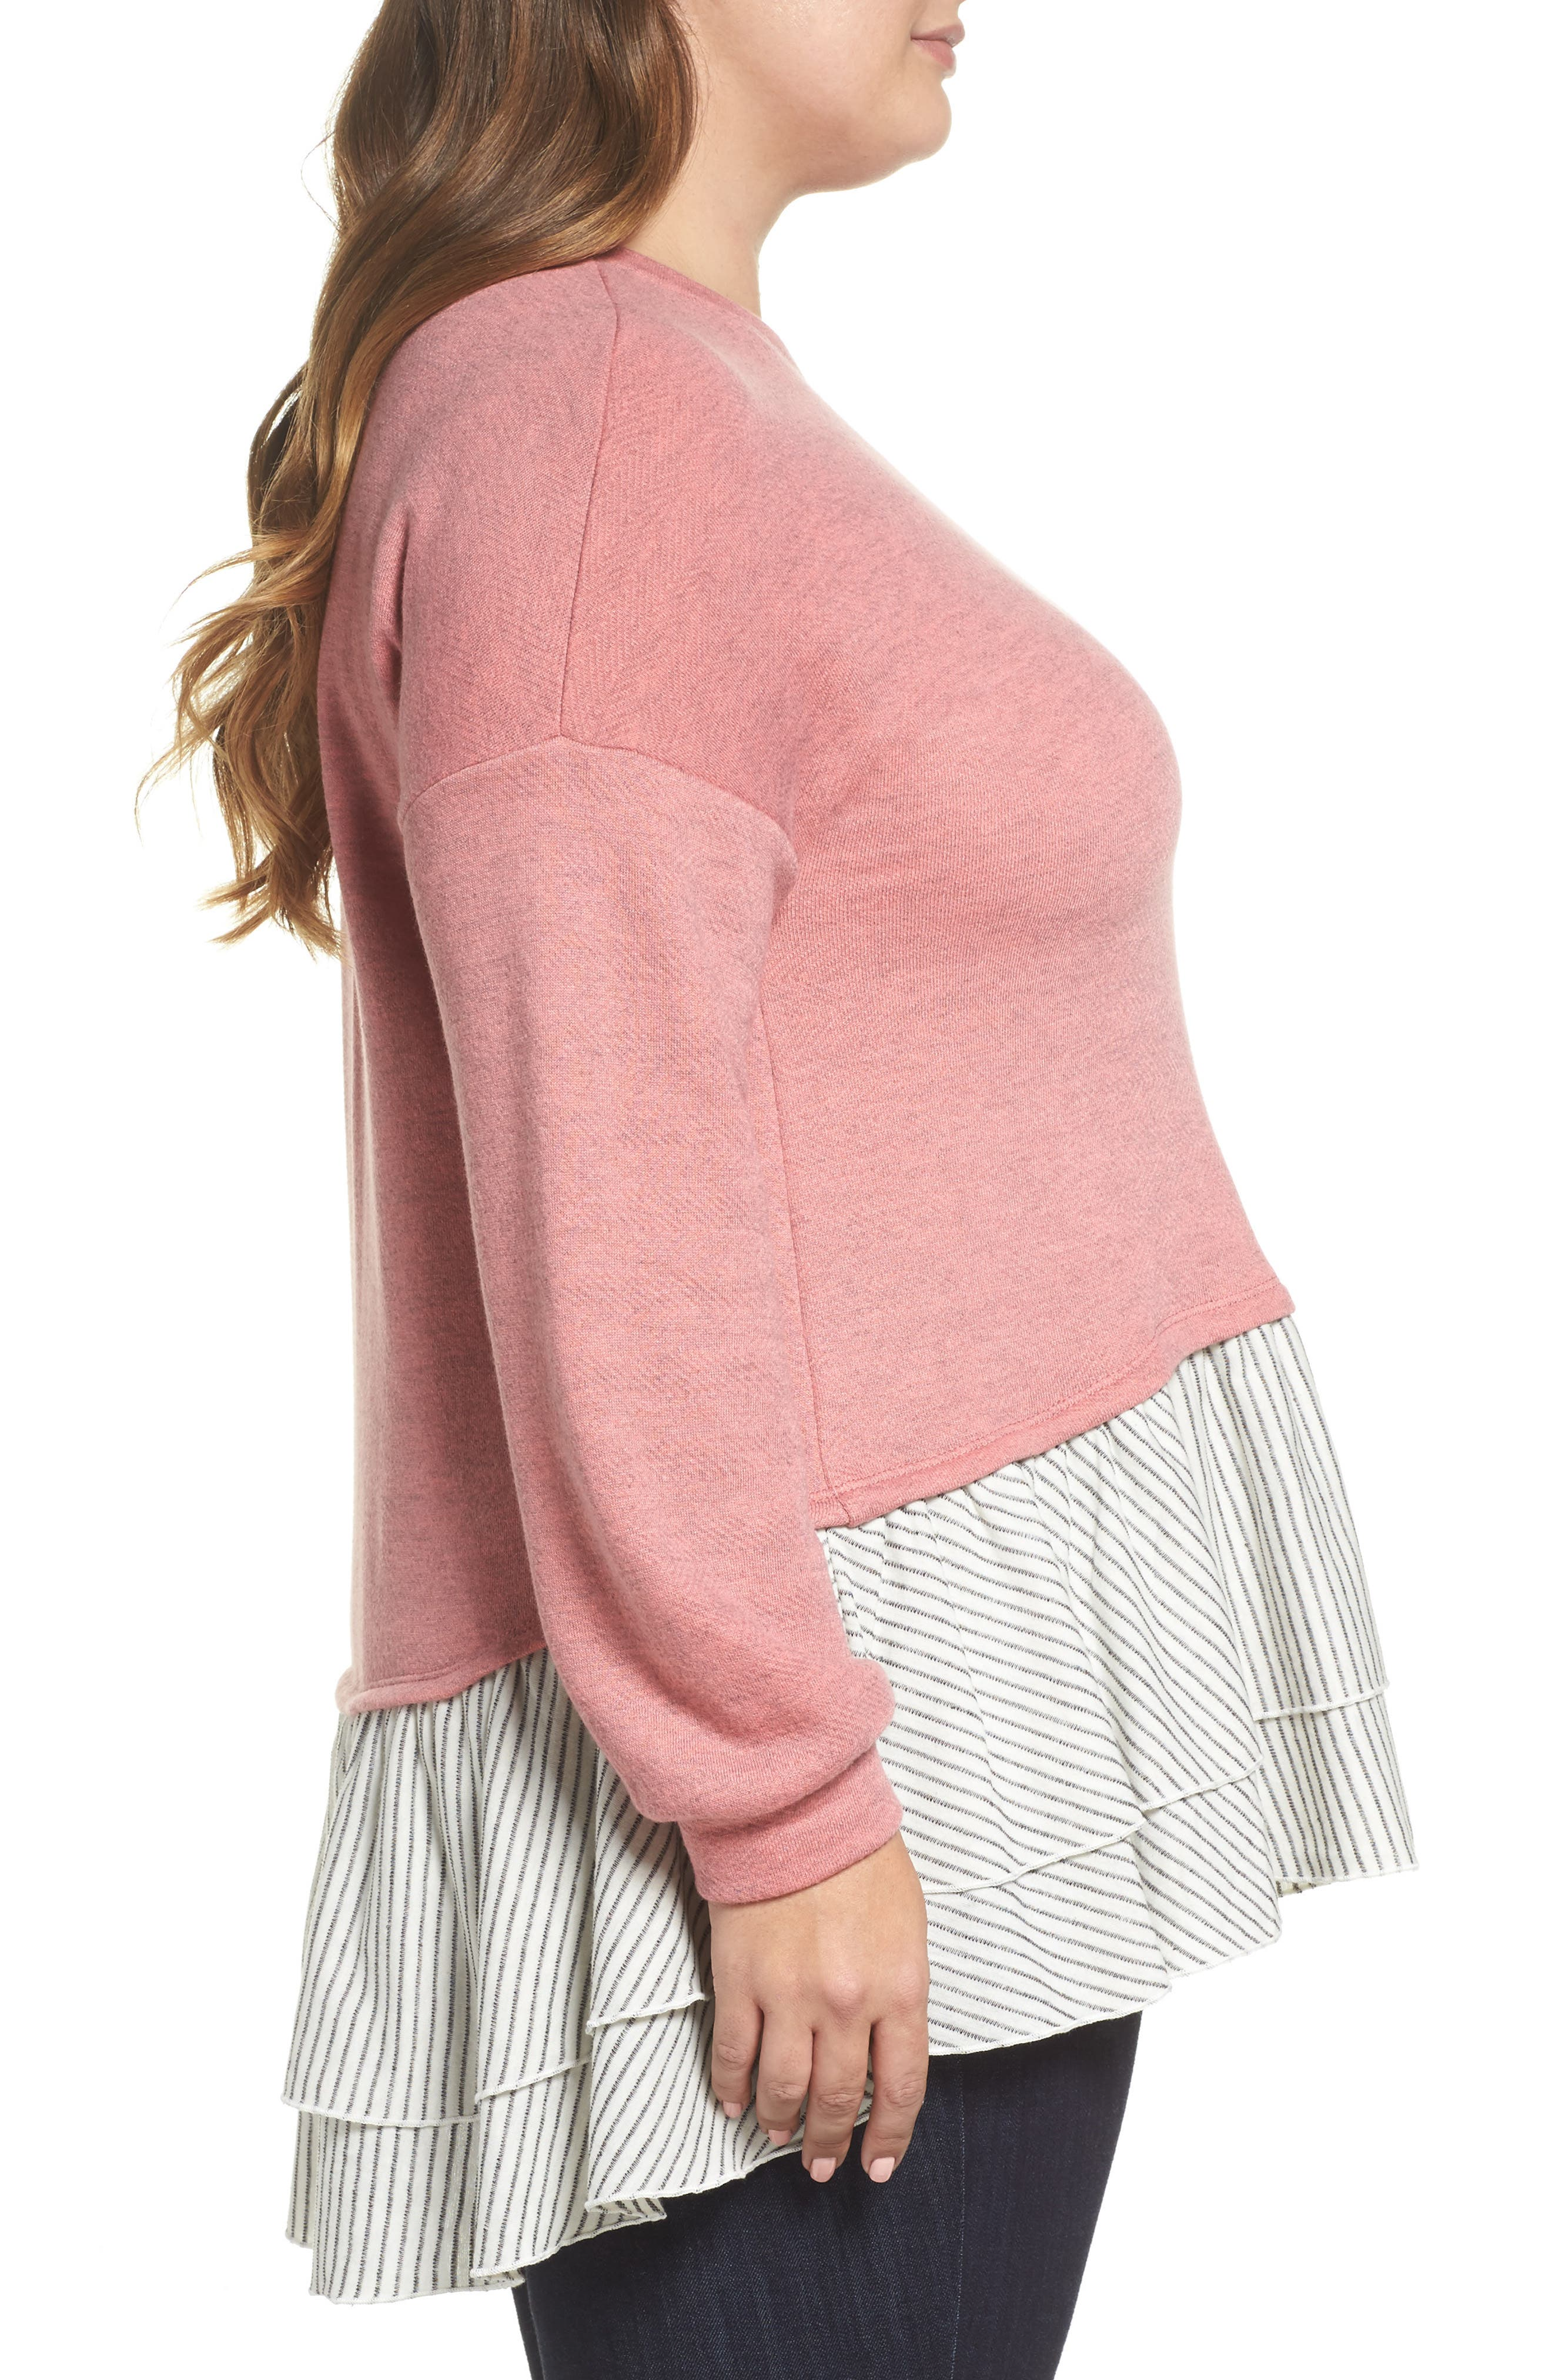 Layered Look Sweatshirt,                             Alternate thumbnail 3, color,                             Coral- Navy Stripe Colorblock